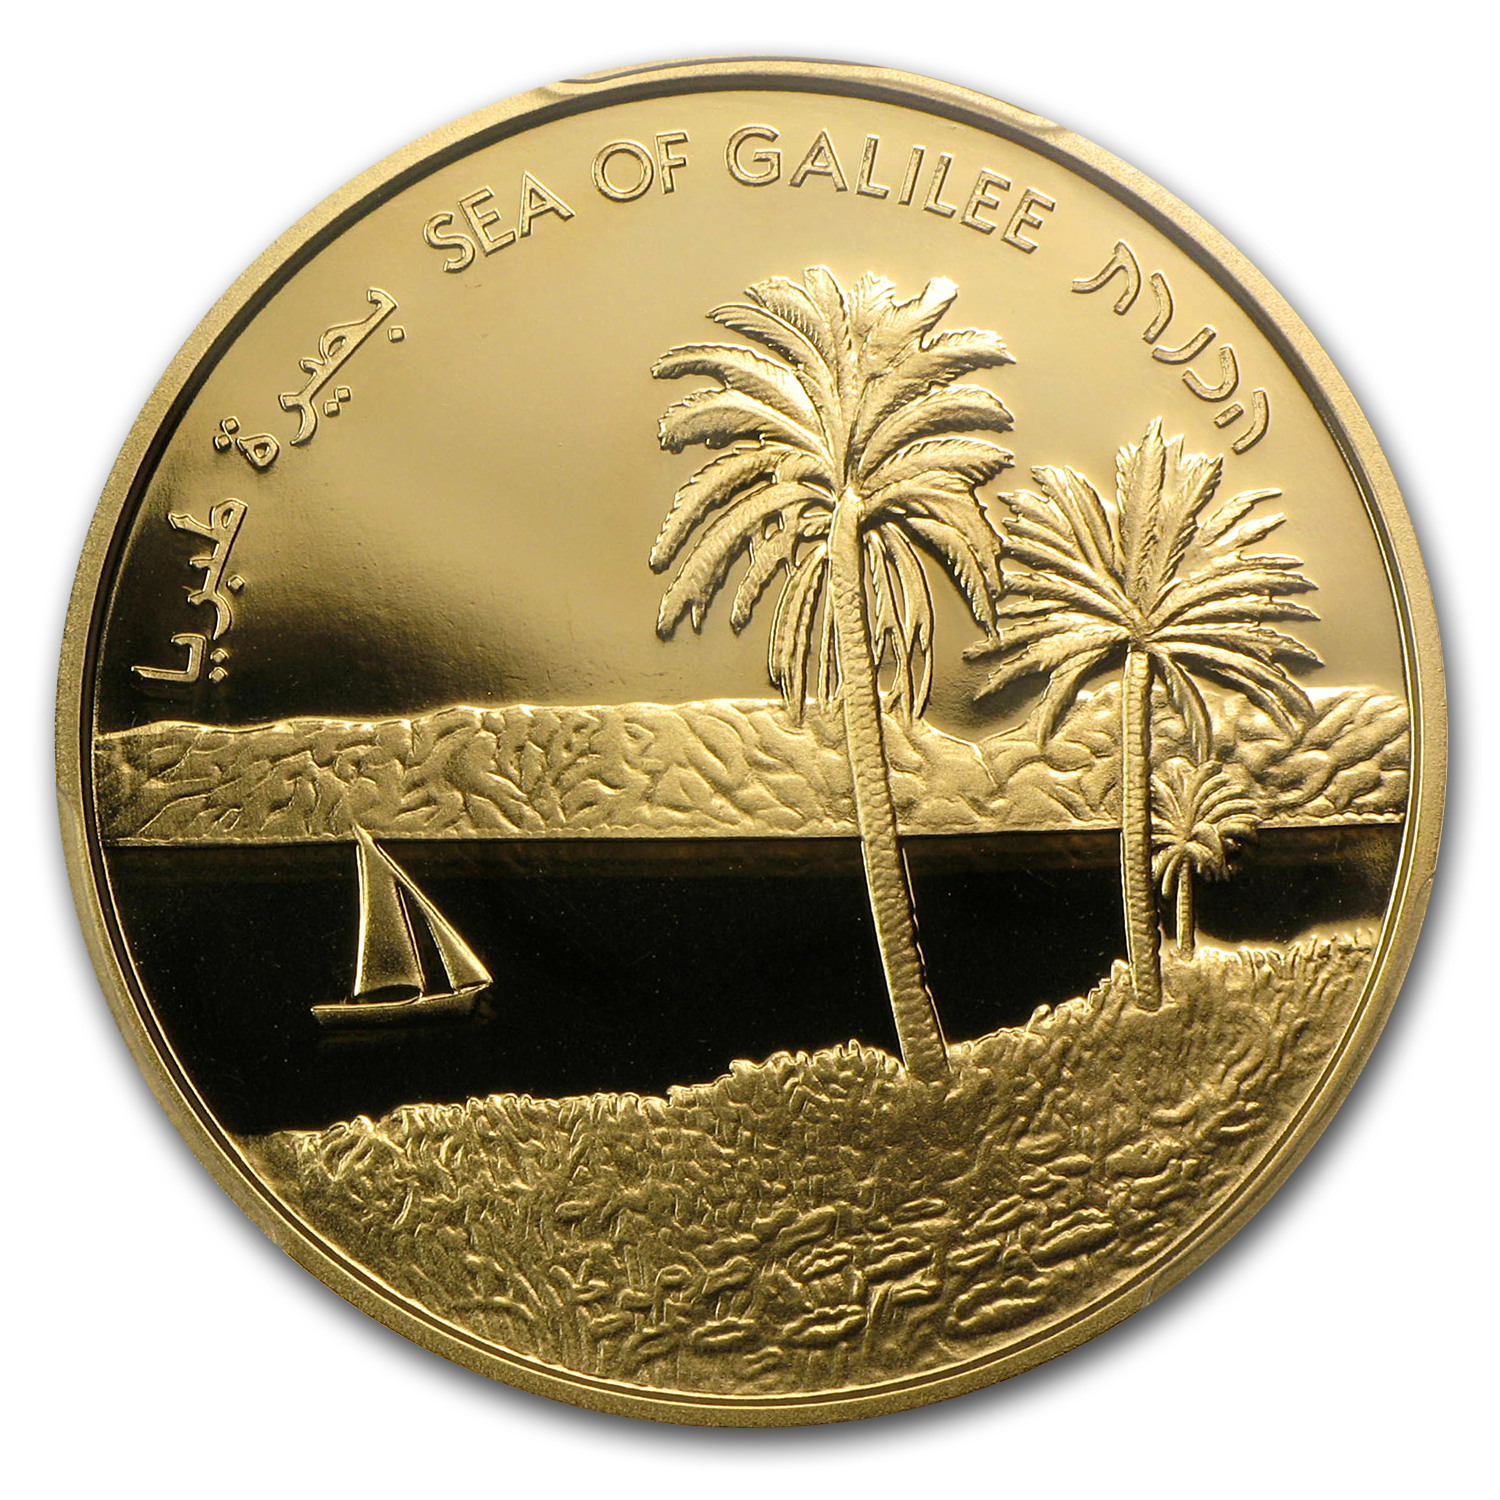 2012 Israel 1/2 oz Gold Sea of Galilee PR-69 PCGS